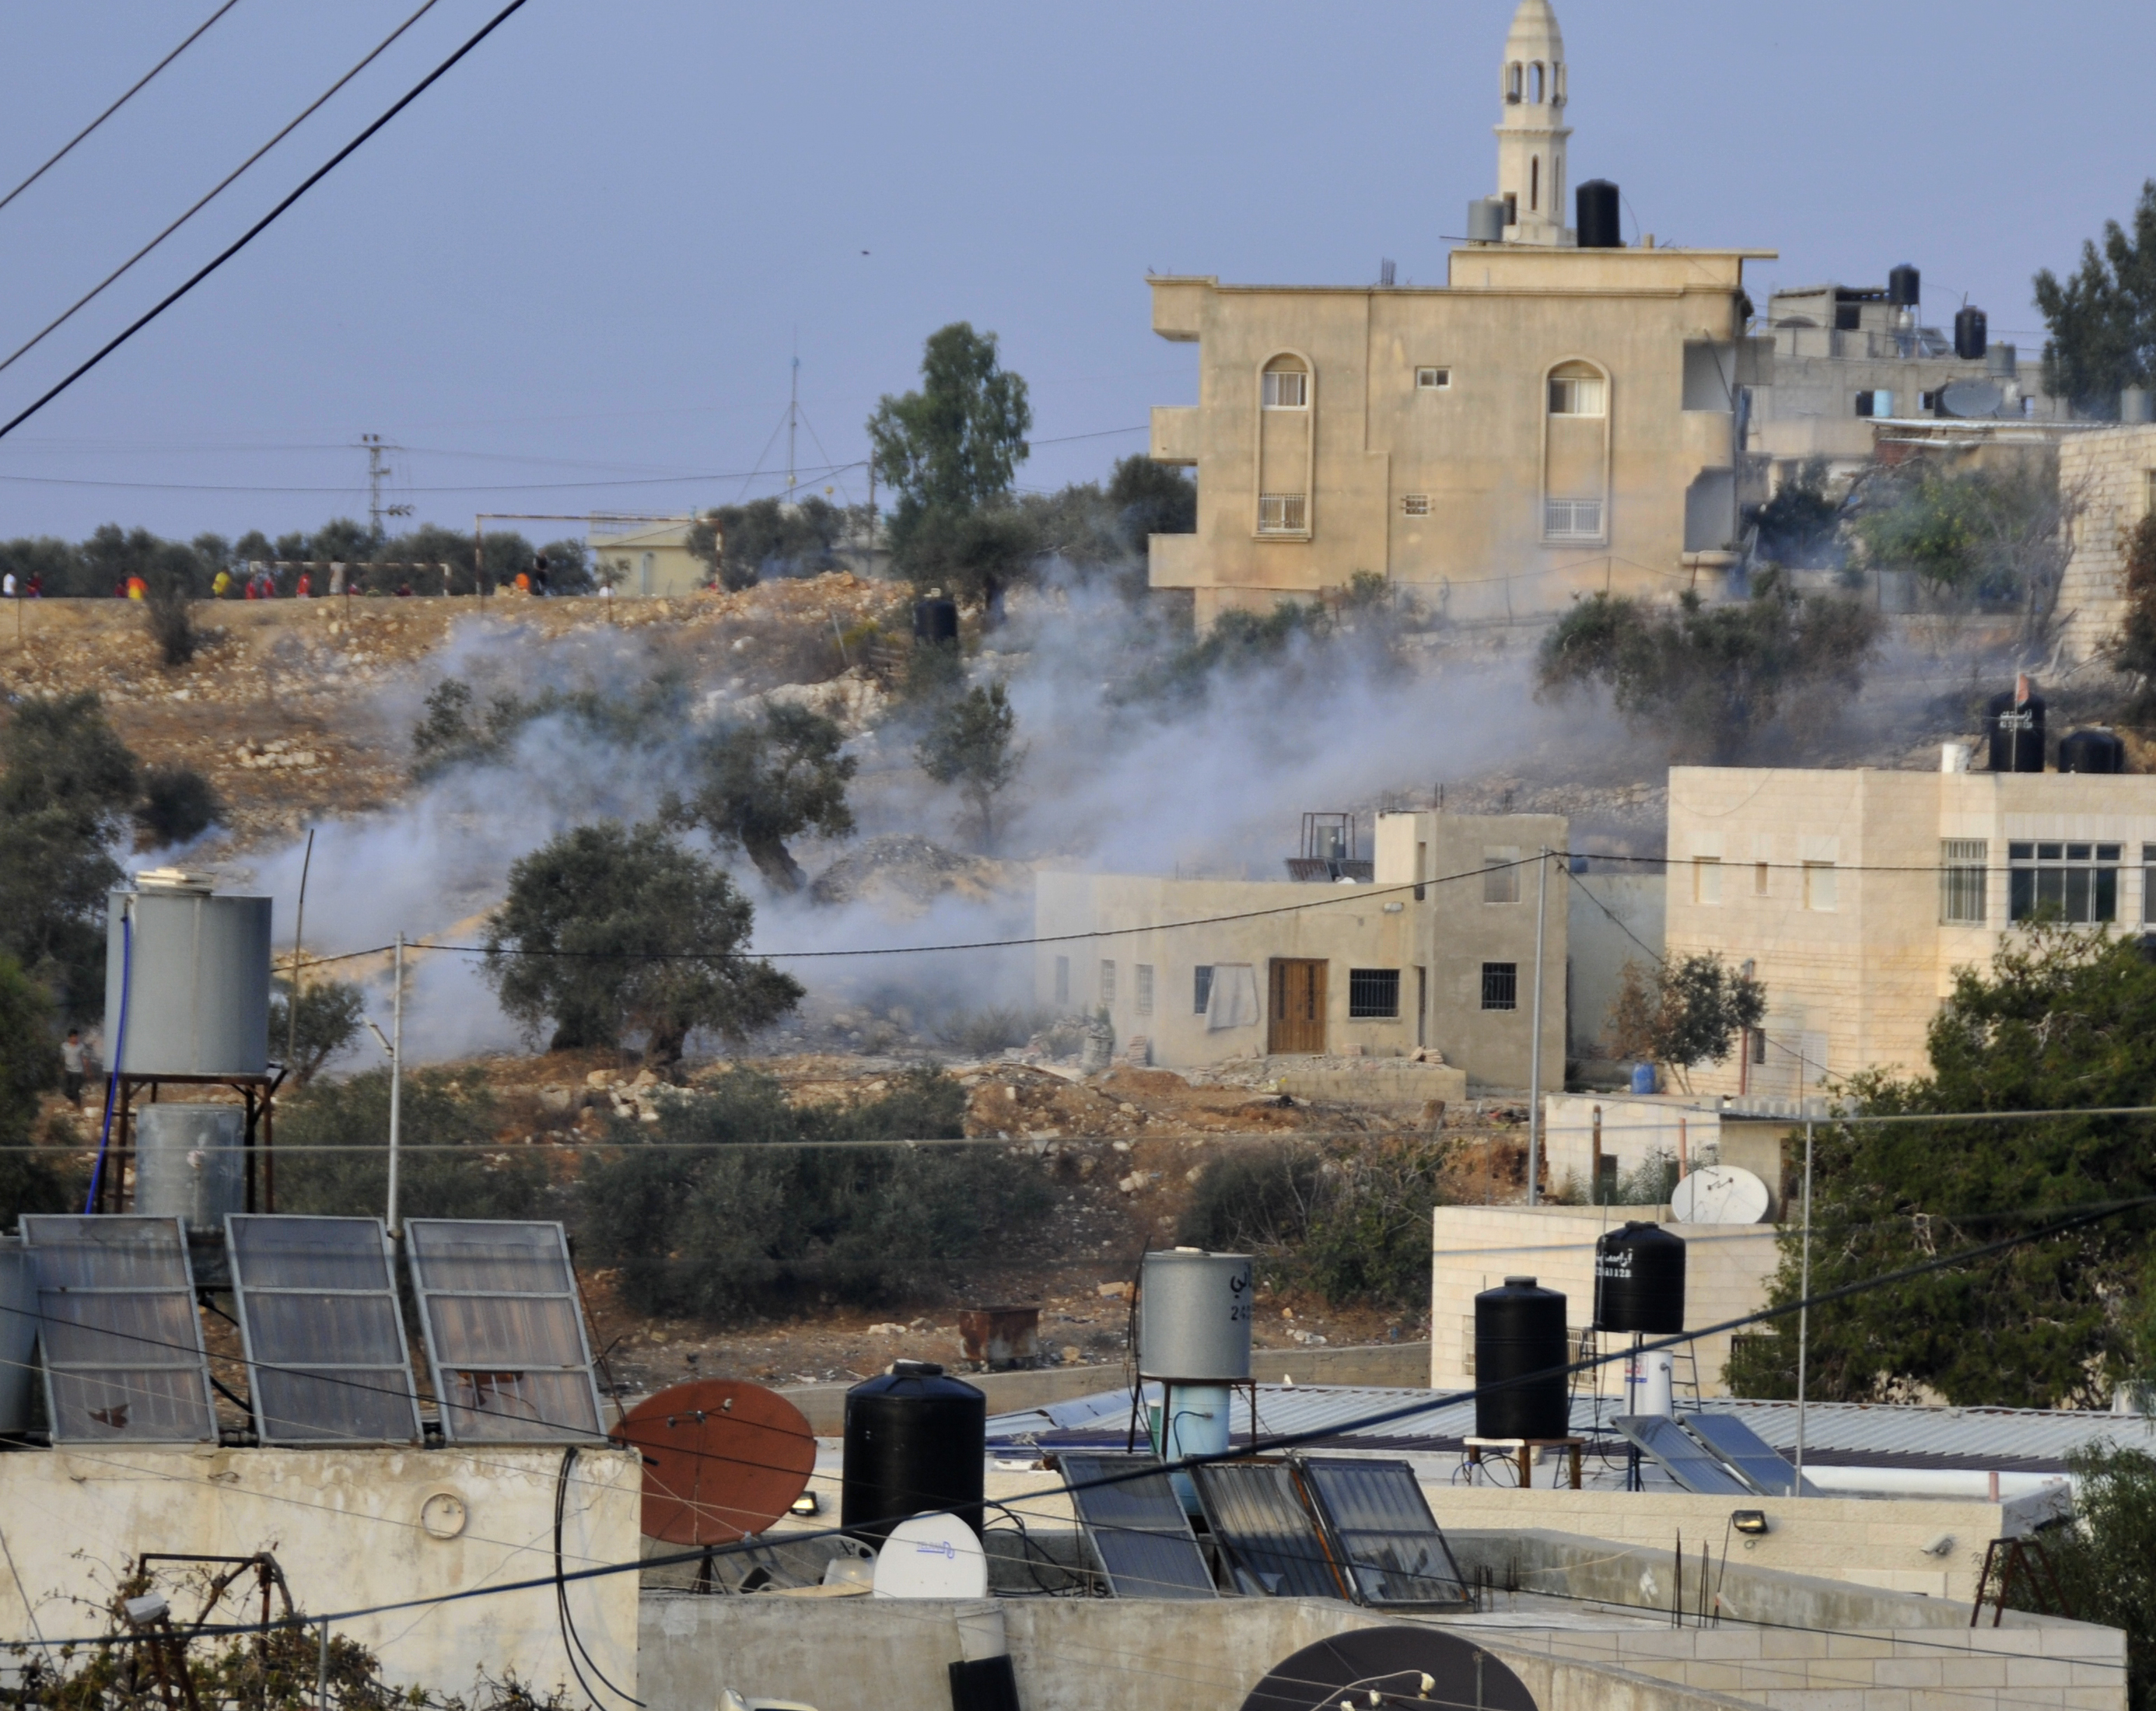 Tear gas drifts into the windows of the home in the village of Nabi Salih. Photo by ELLEN DAVIDSON